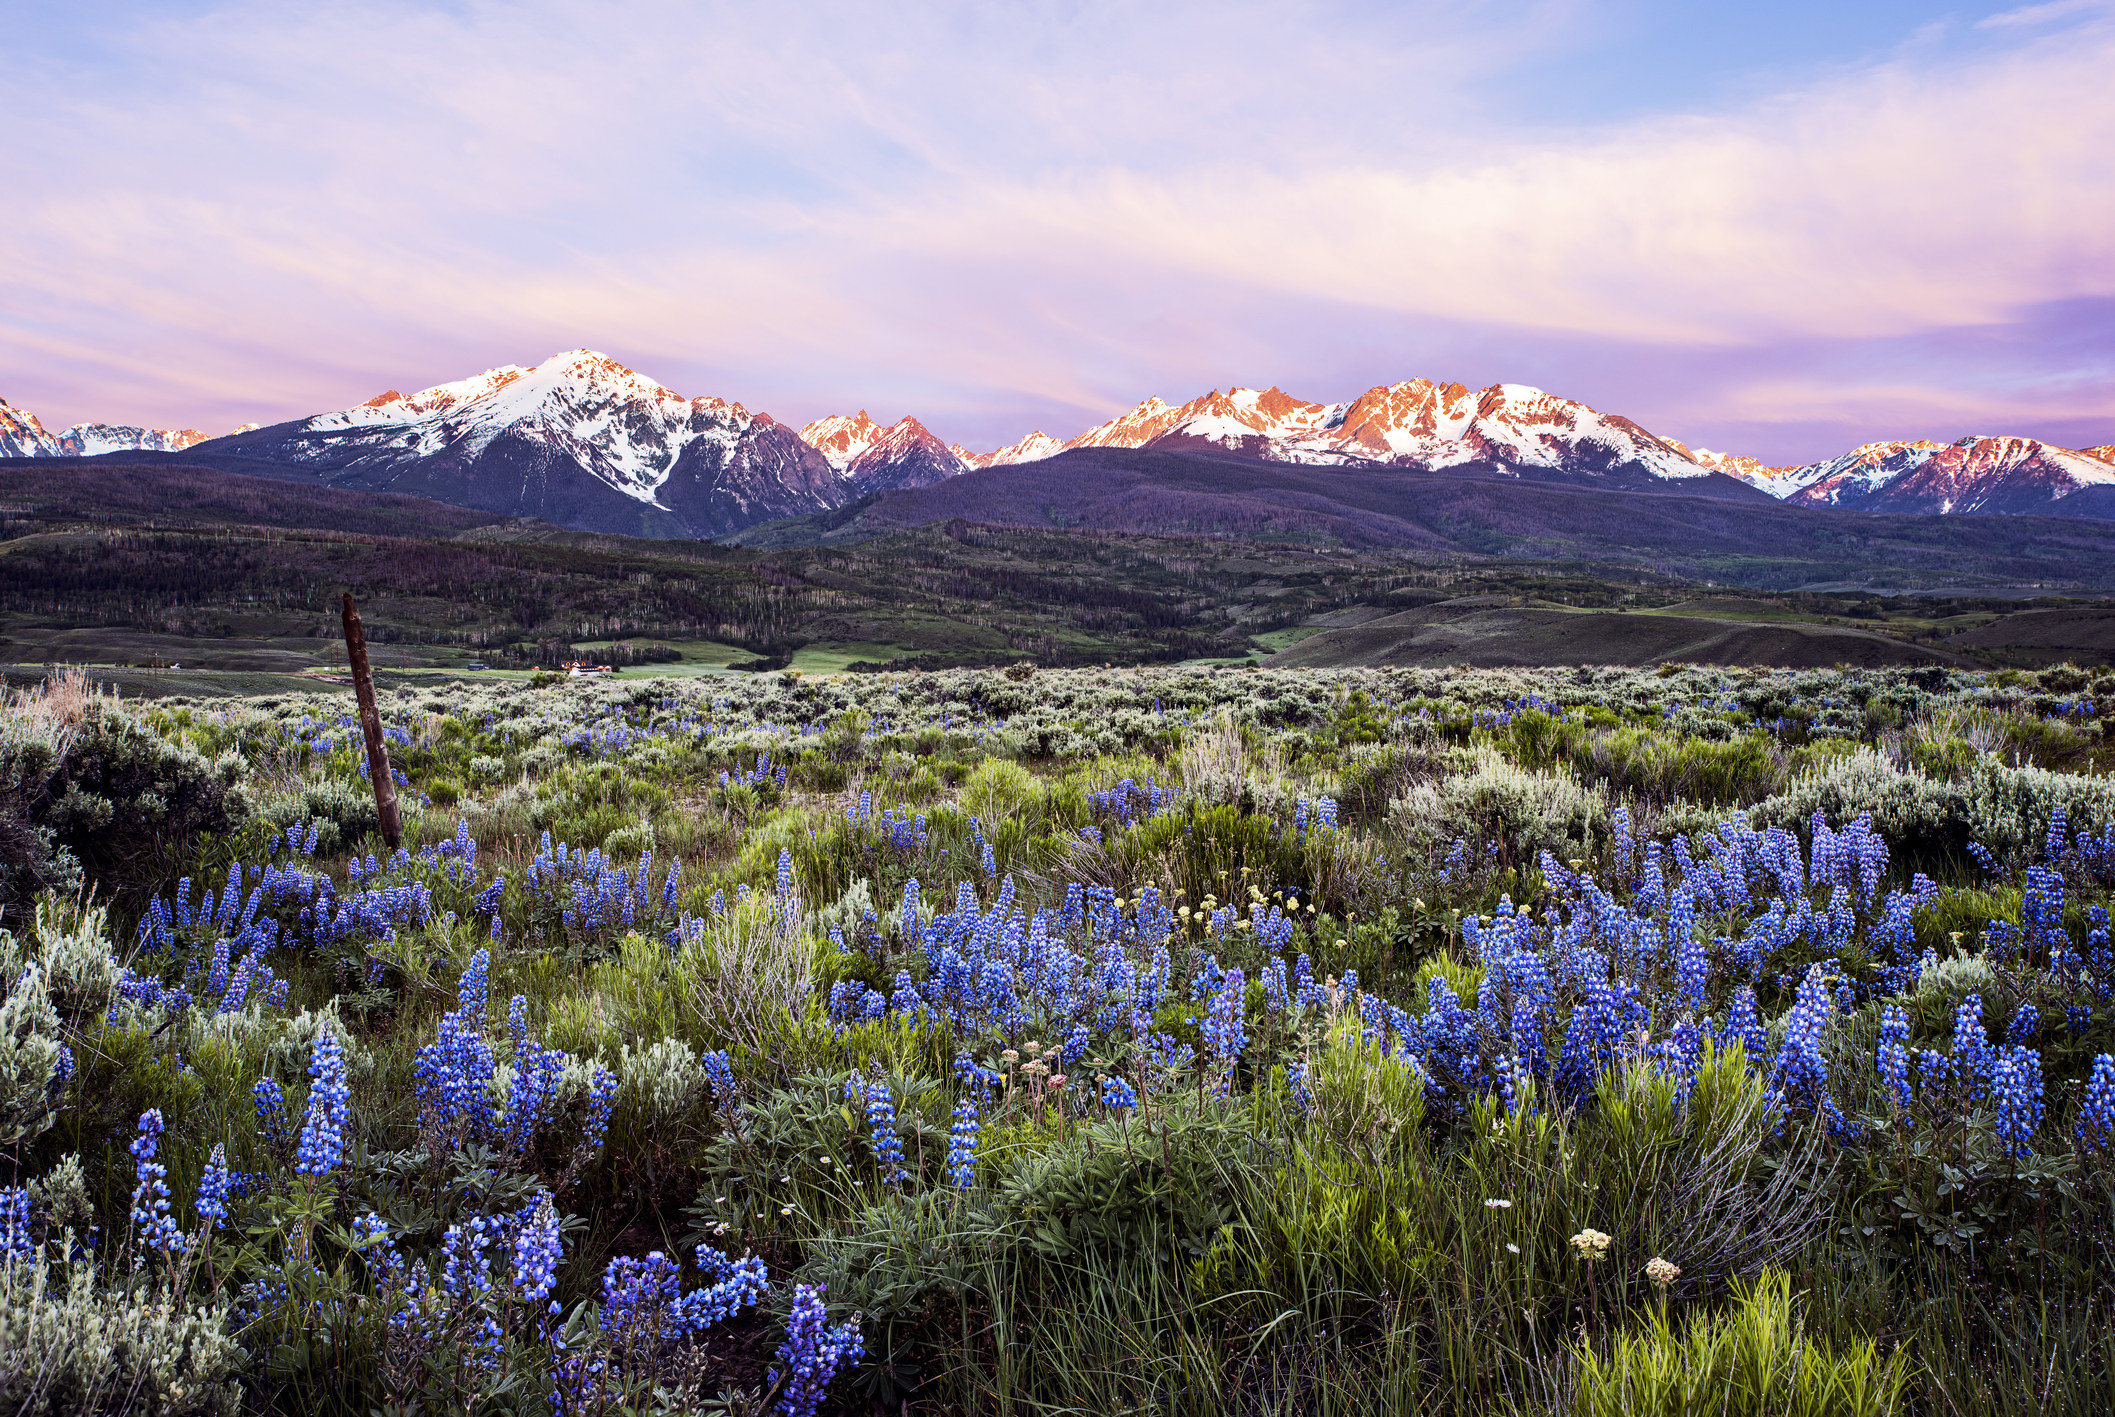 A snow-capped mountain range under a purple sunset with wild purple flowers in the foreground